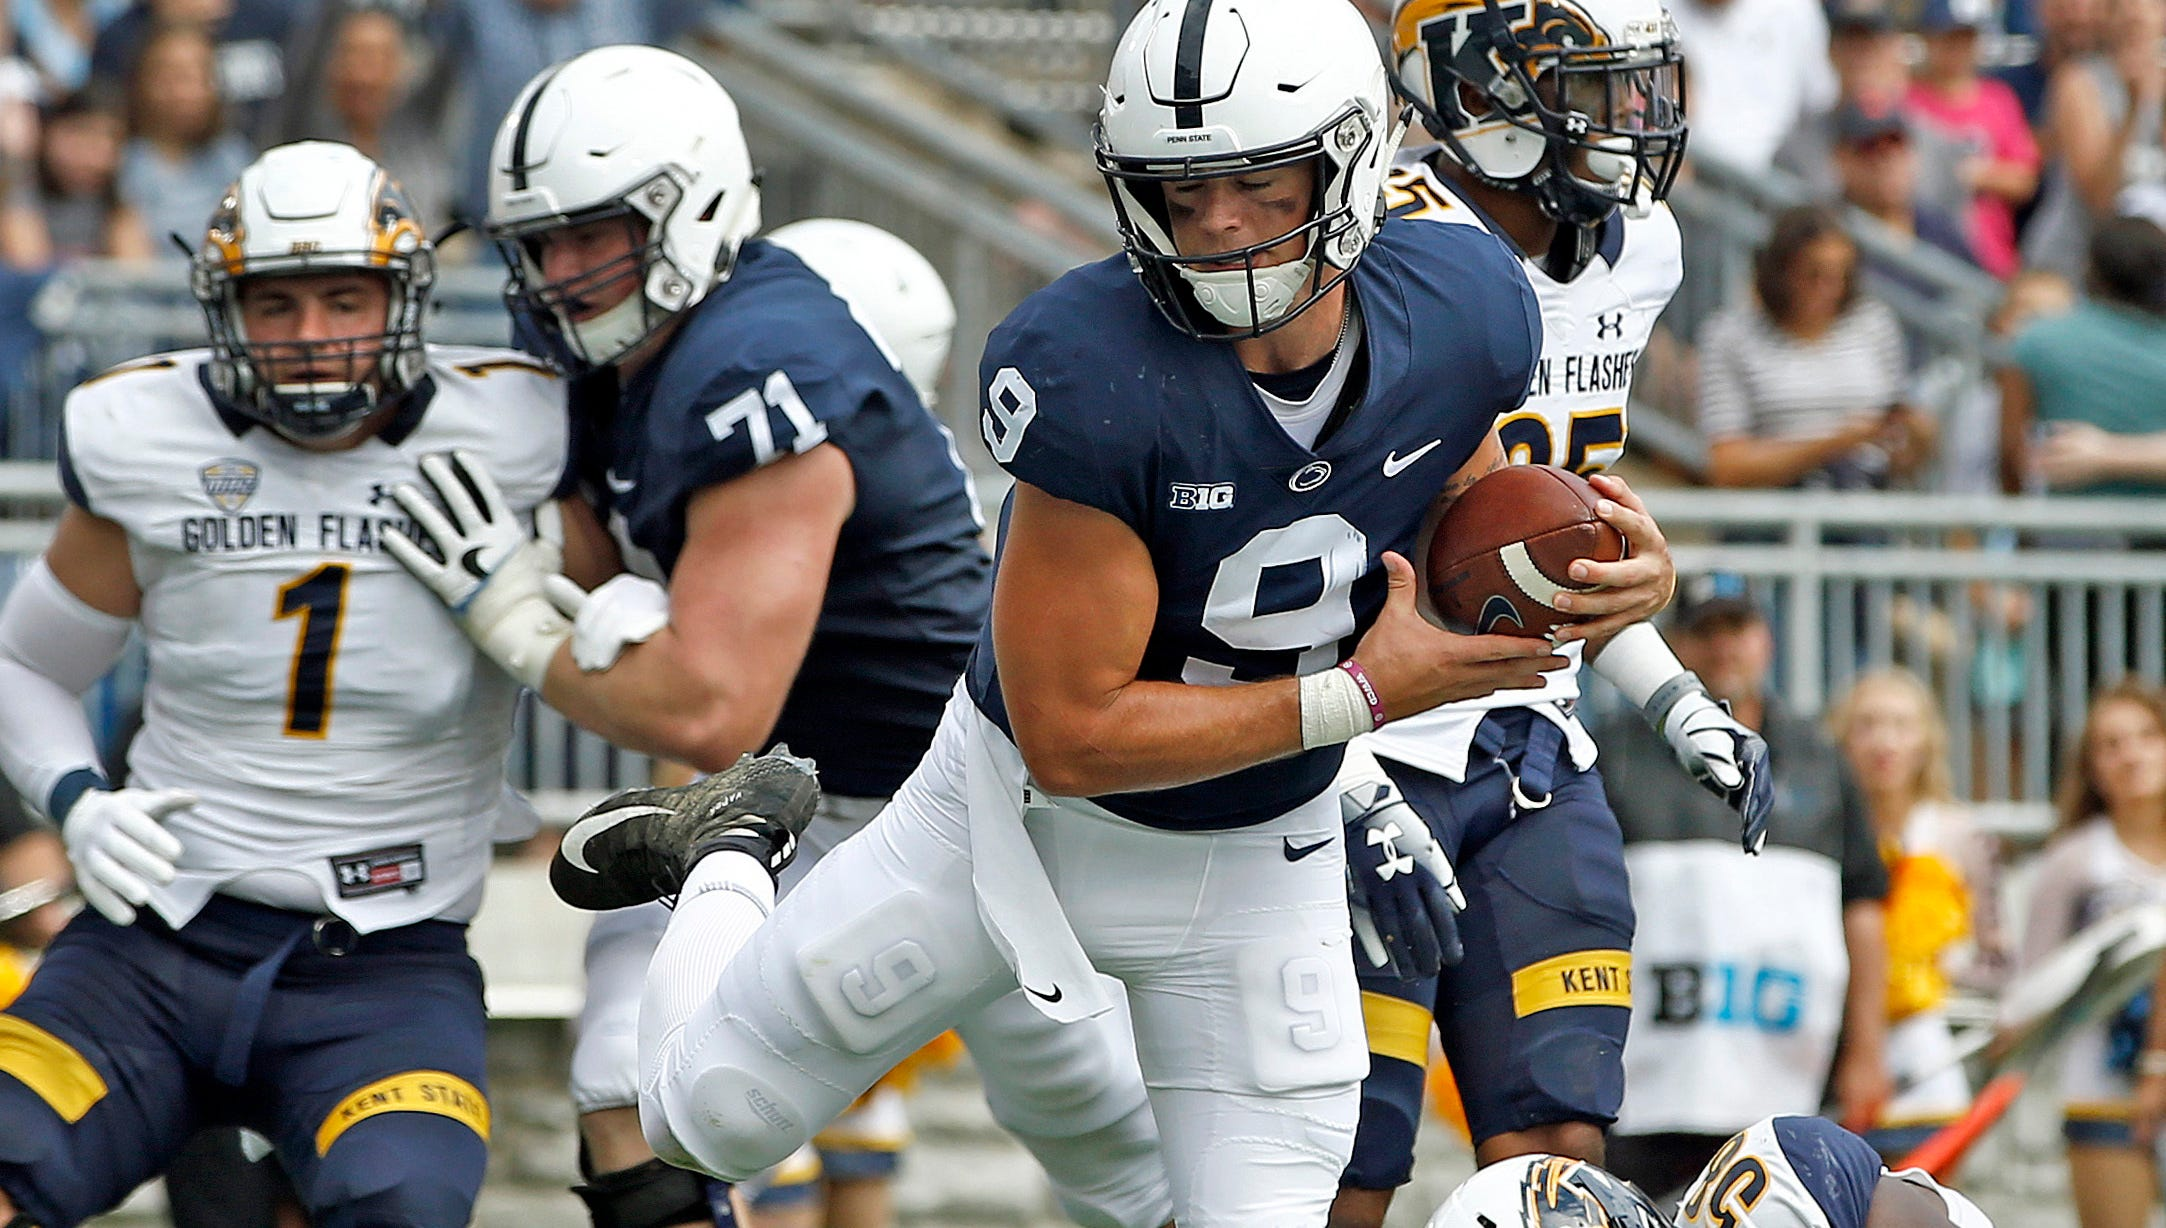 Trace McSorley prevails, leads Nittany Lions to crushing victory over Kent State